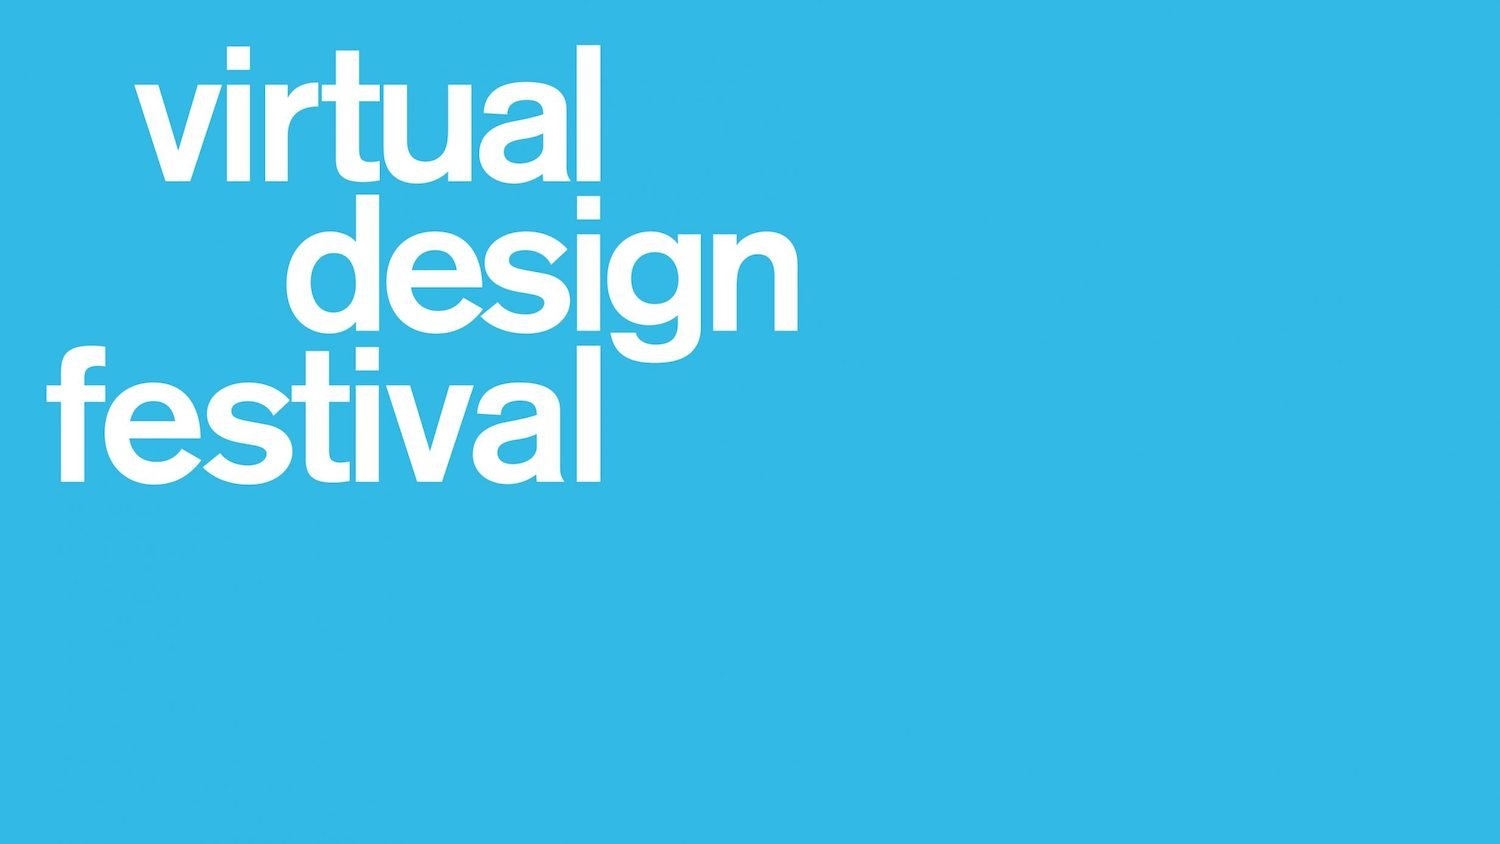 Dezeen's Virtual Design Festival